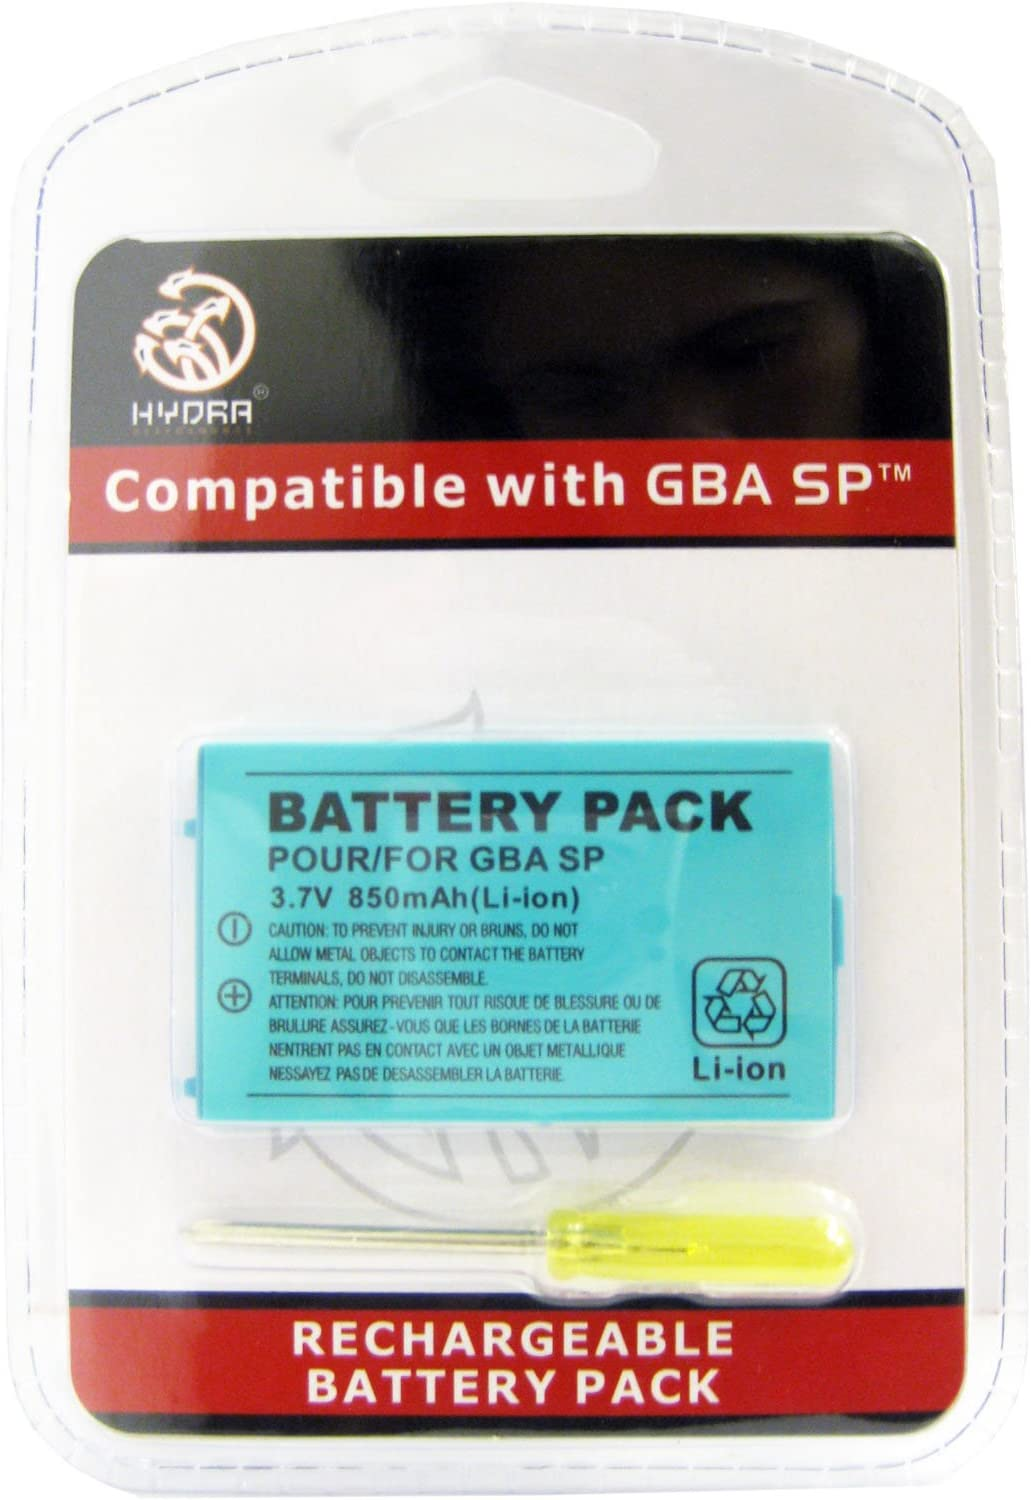 Game boy color online free - Hydra Performance Game Boy Advance Sp Replacement Battery Gba Sp